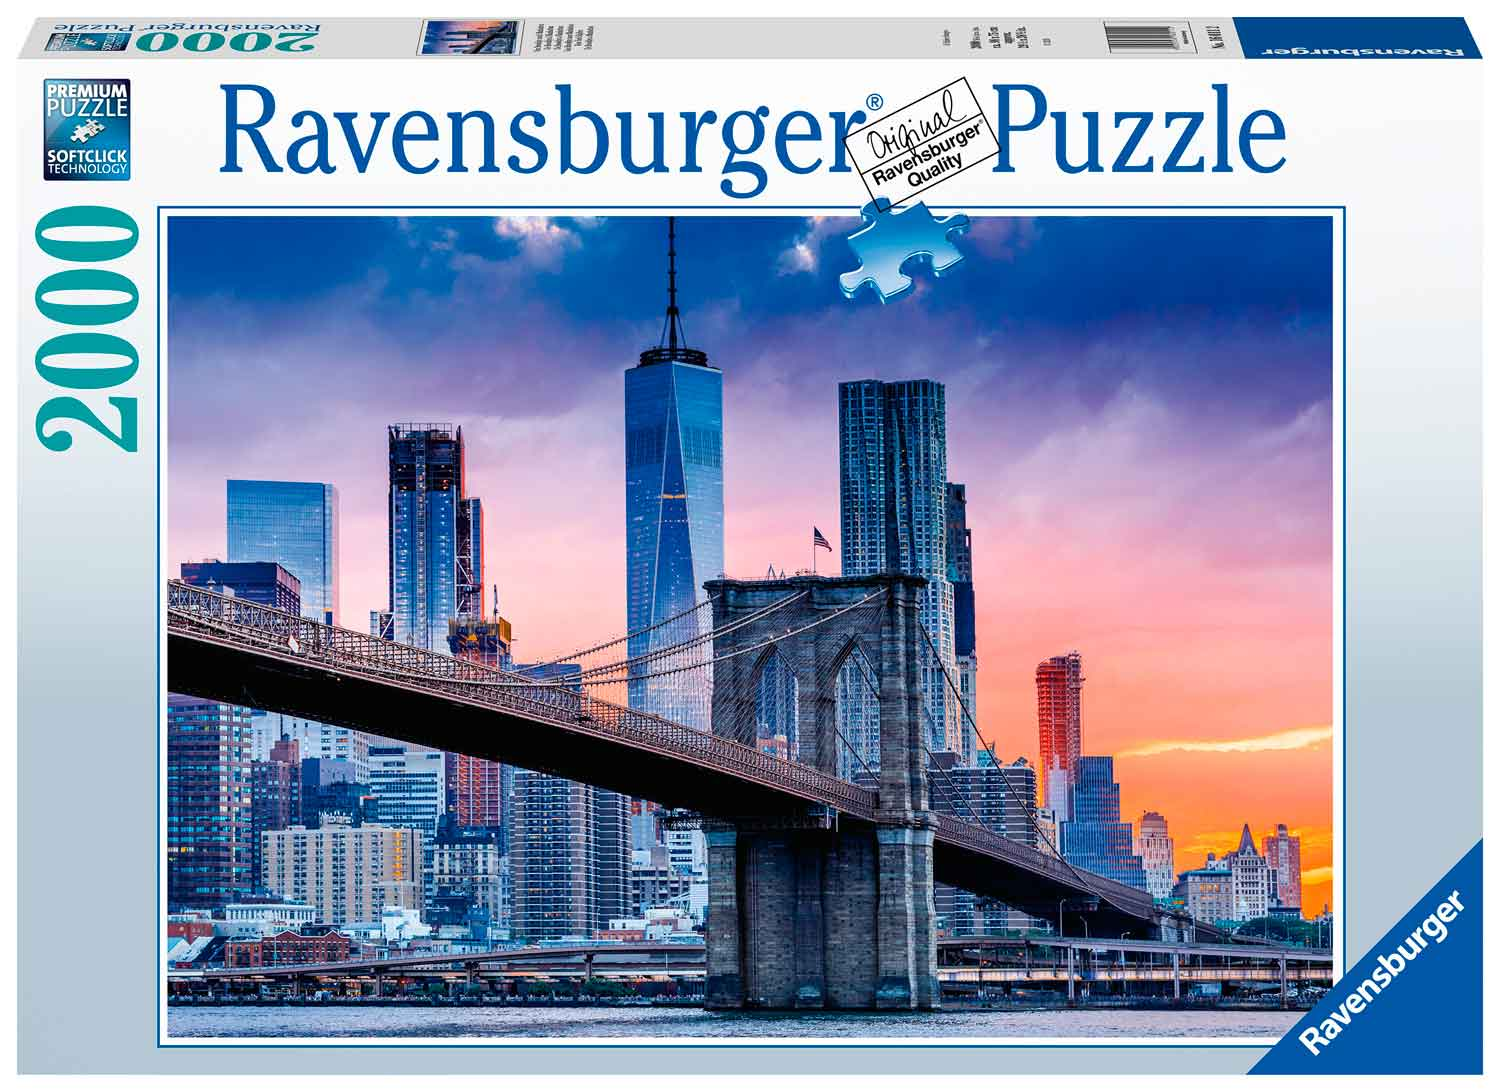 Puzzle Ravensburger De Brooklyn a Manhattan de 2000 Piezas